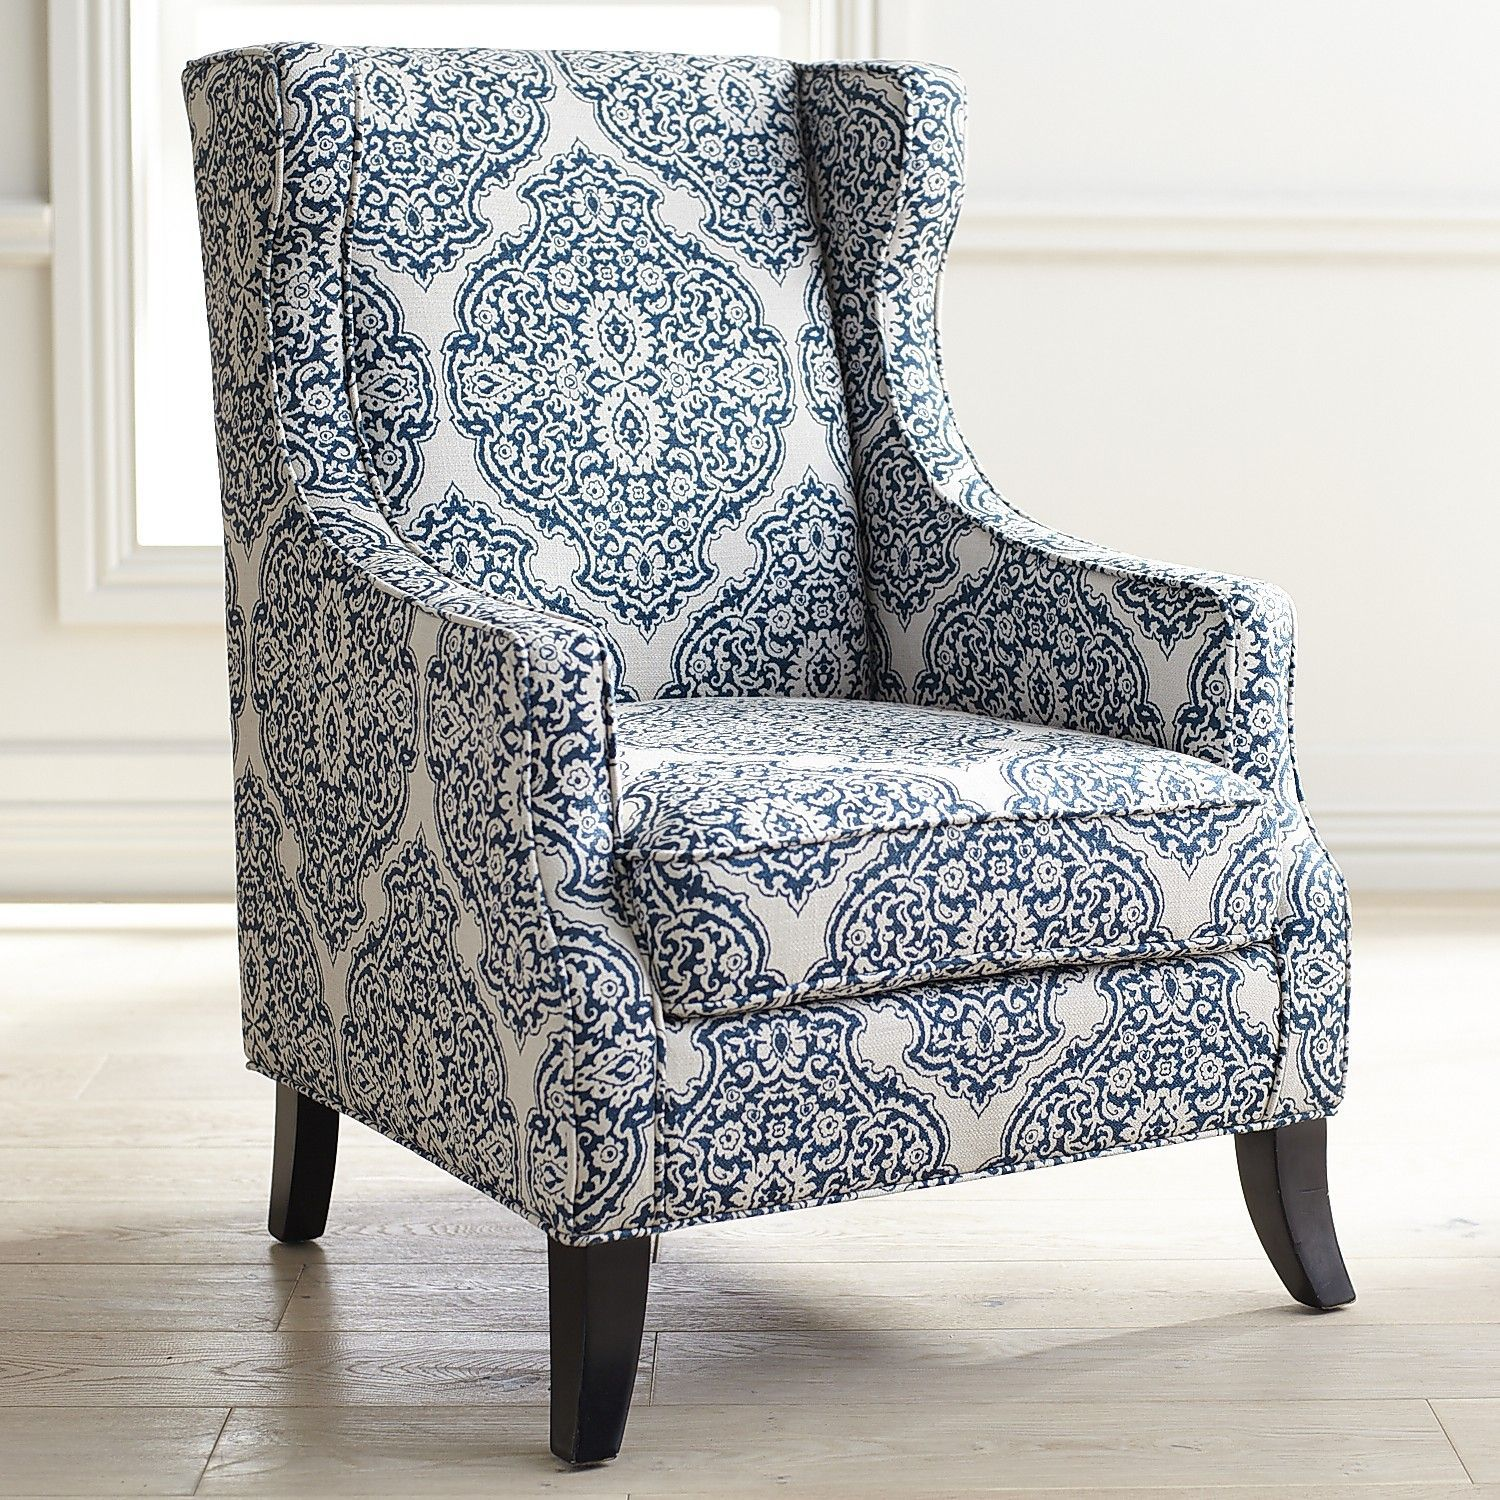 Alec indigo blue wing chair blue wing chair blue accent